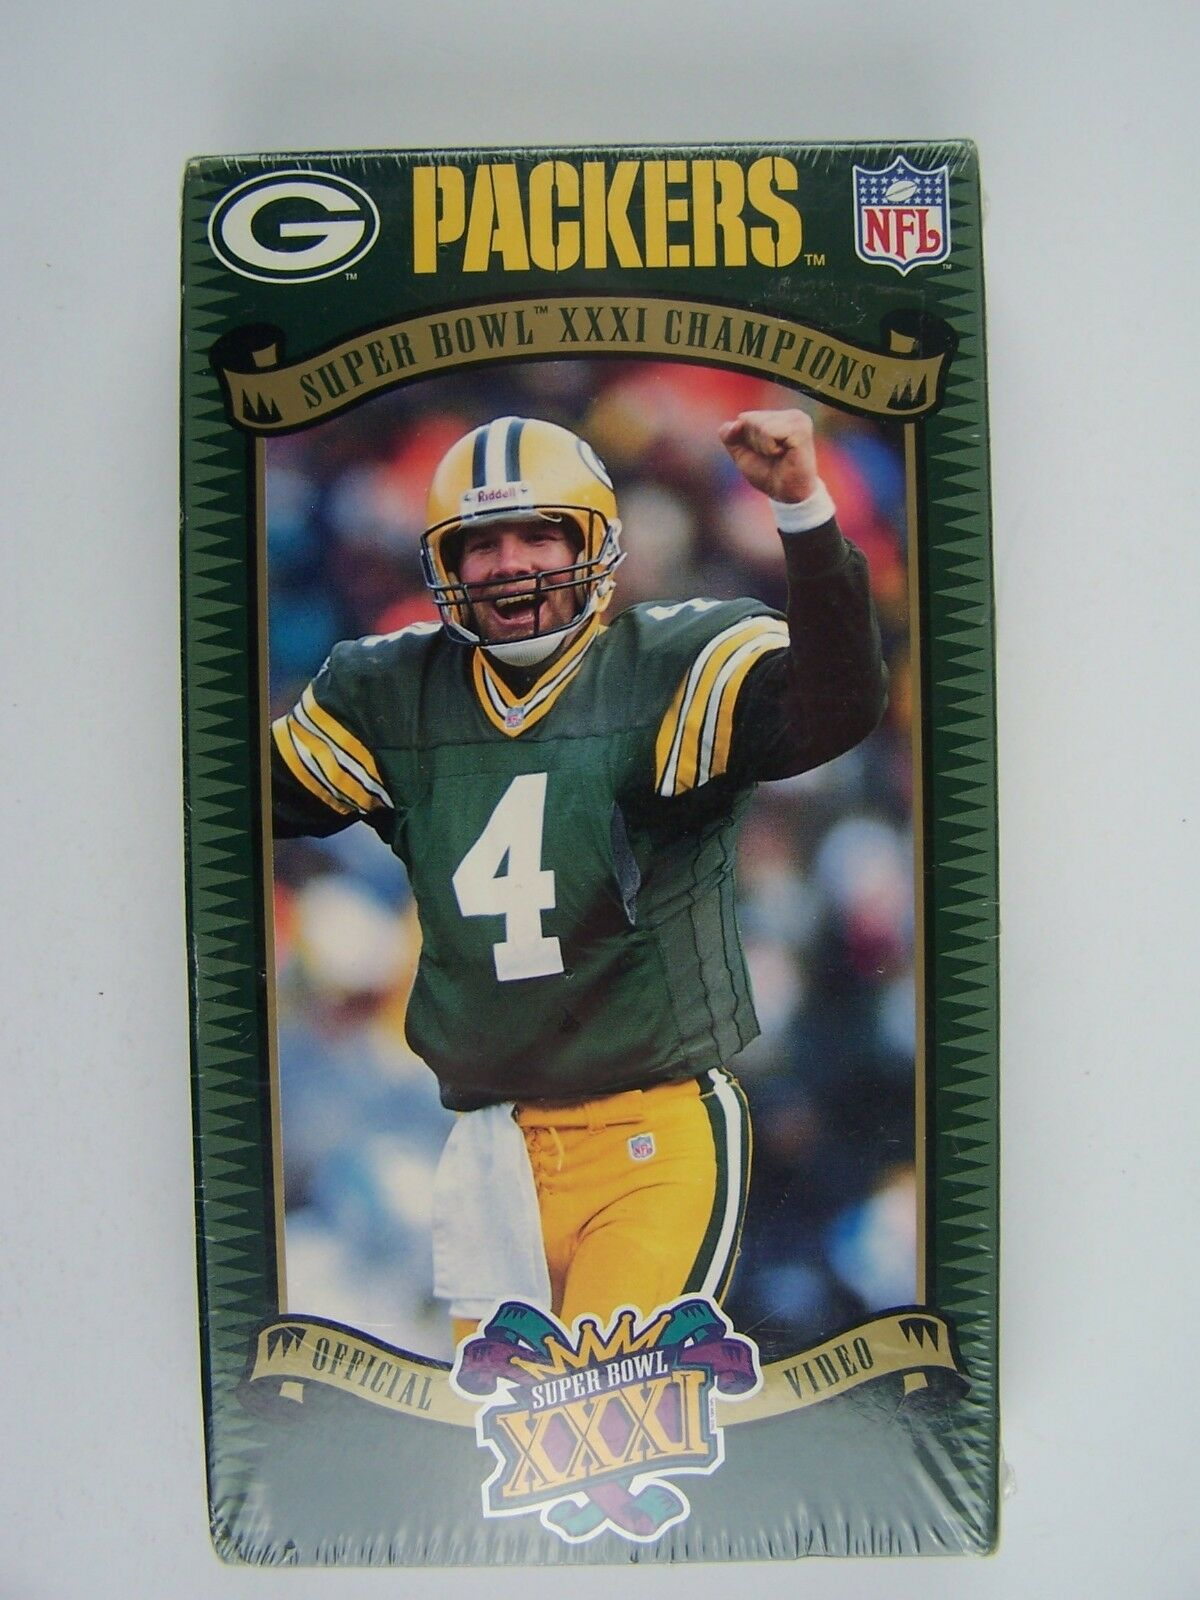 Super Bowl XXXI - Green Bay Packers Championship Offici